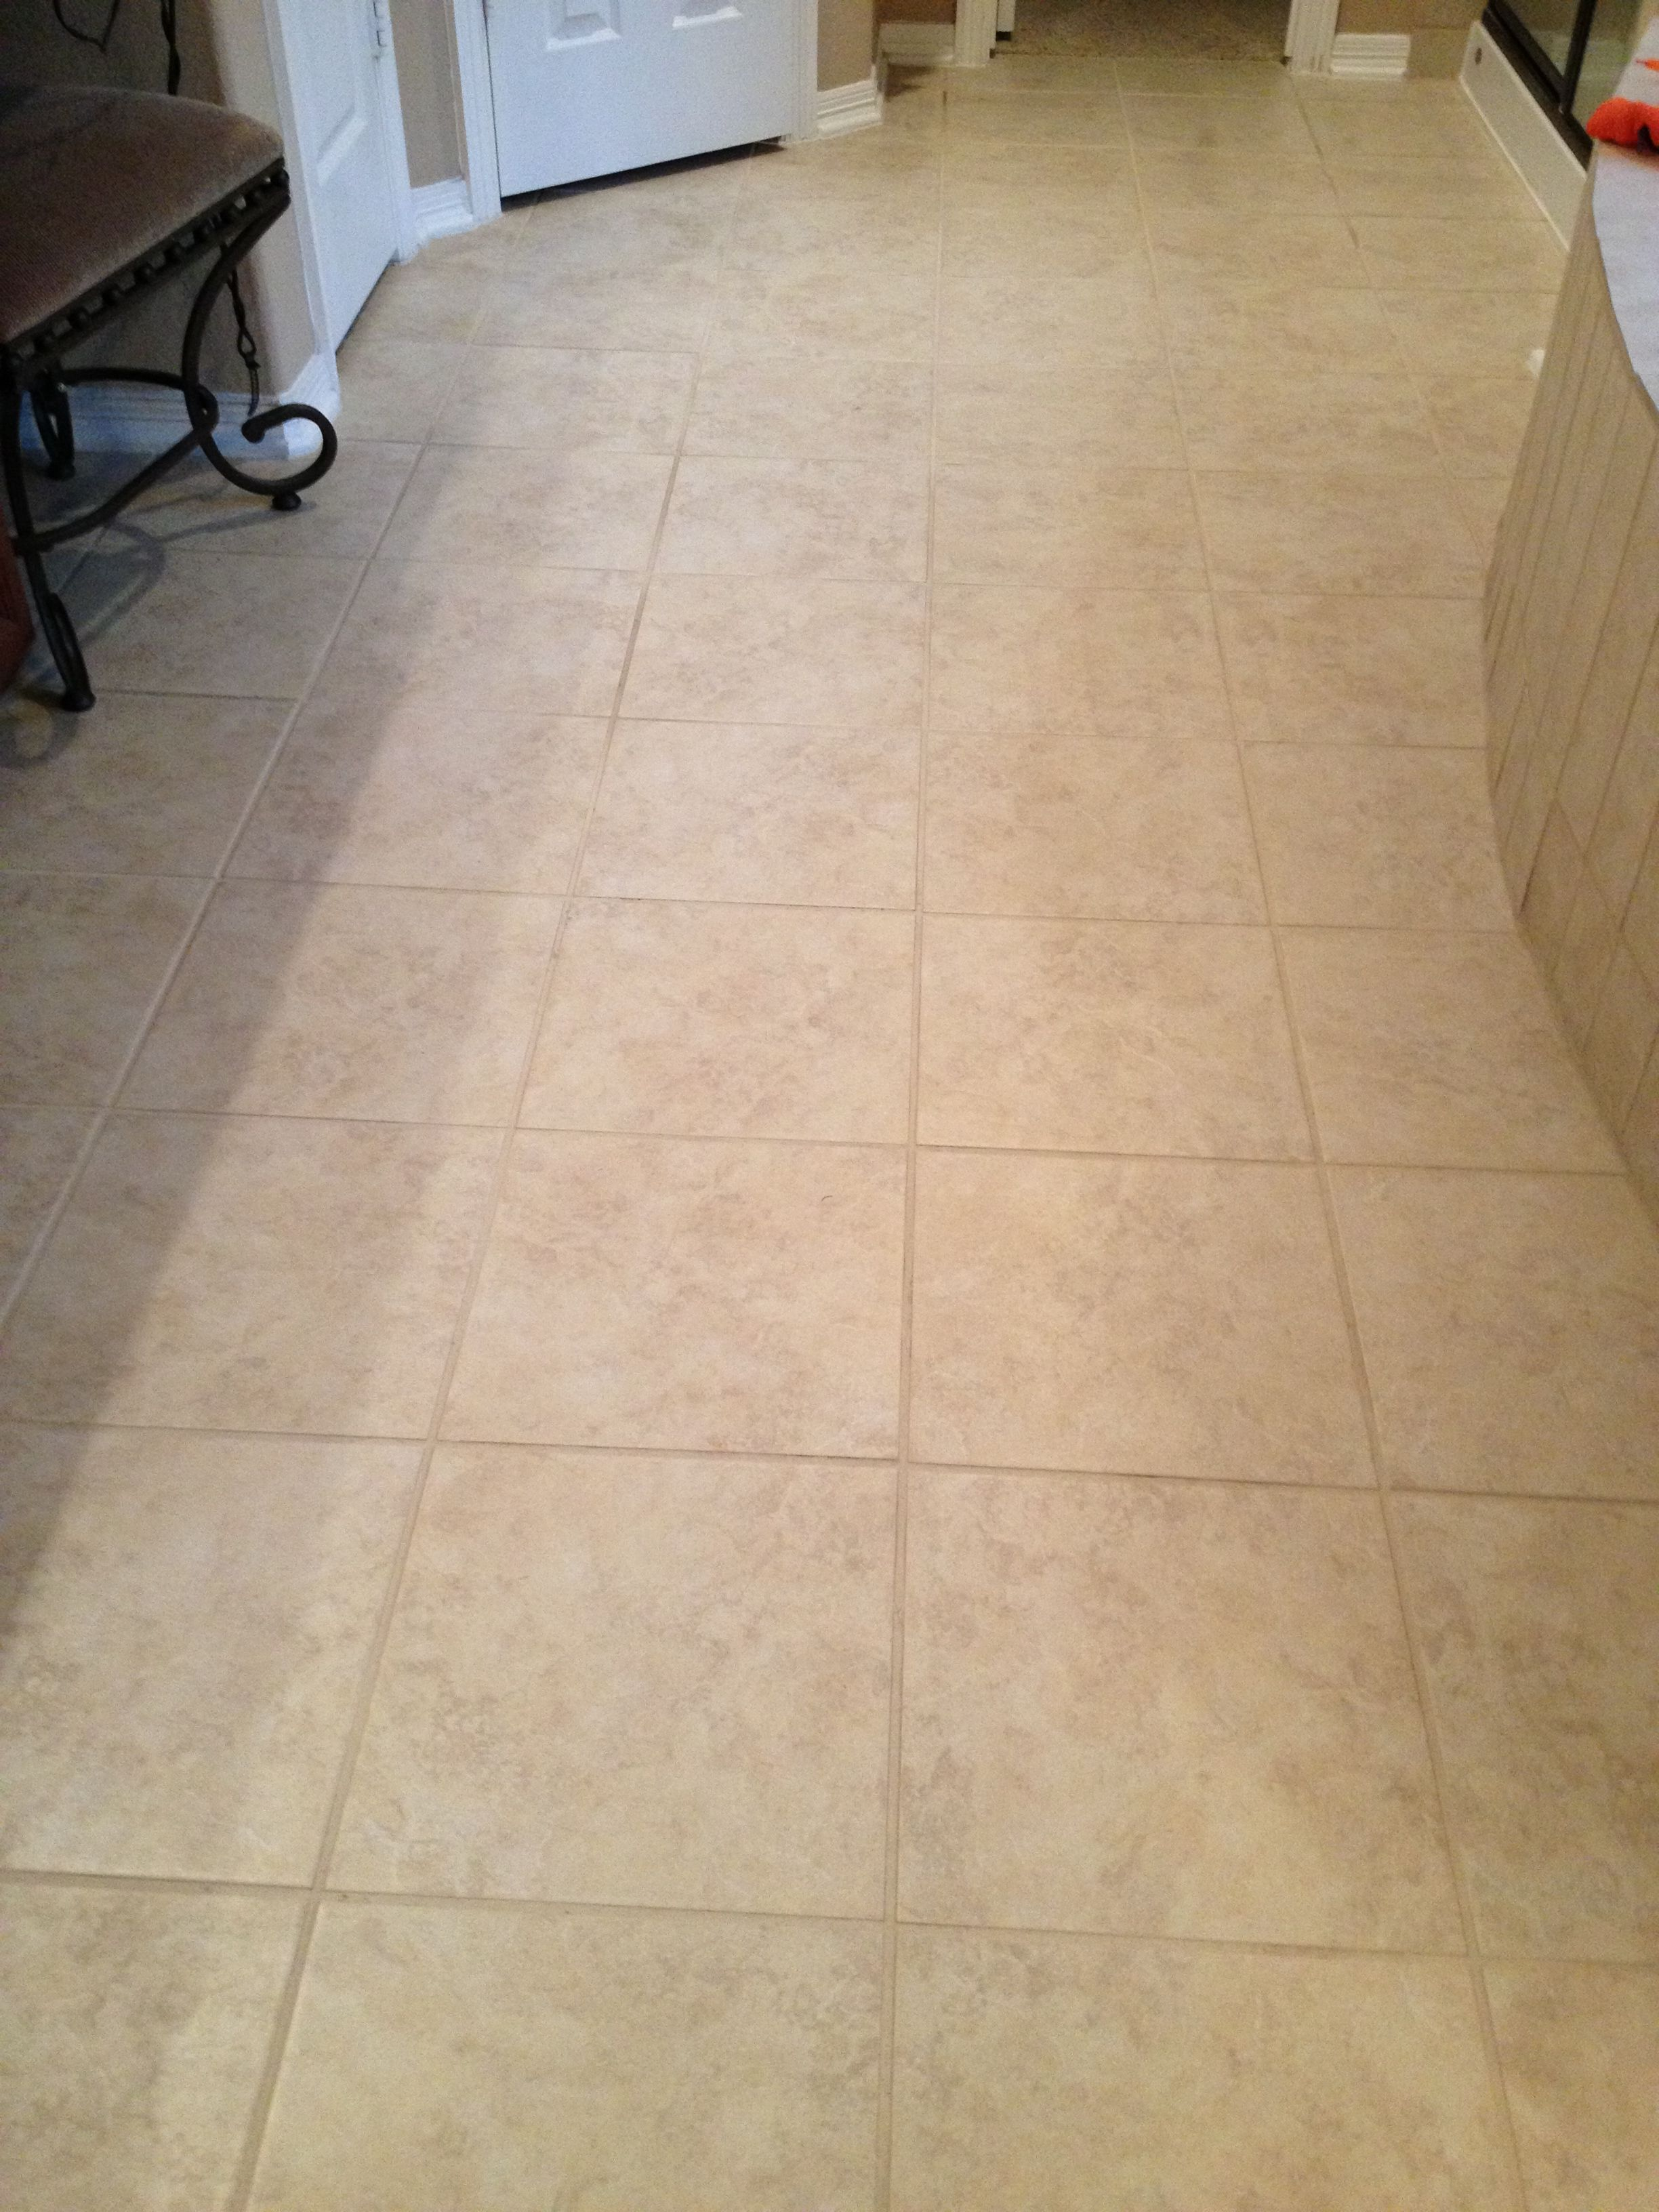 Cleaning grout in bathroom (after picture) used a product from Lowes called  Zep grout